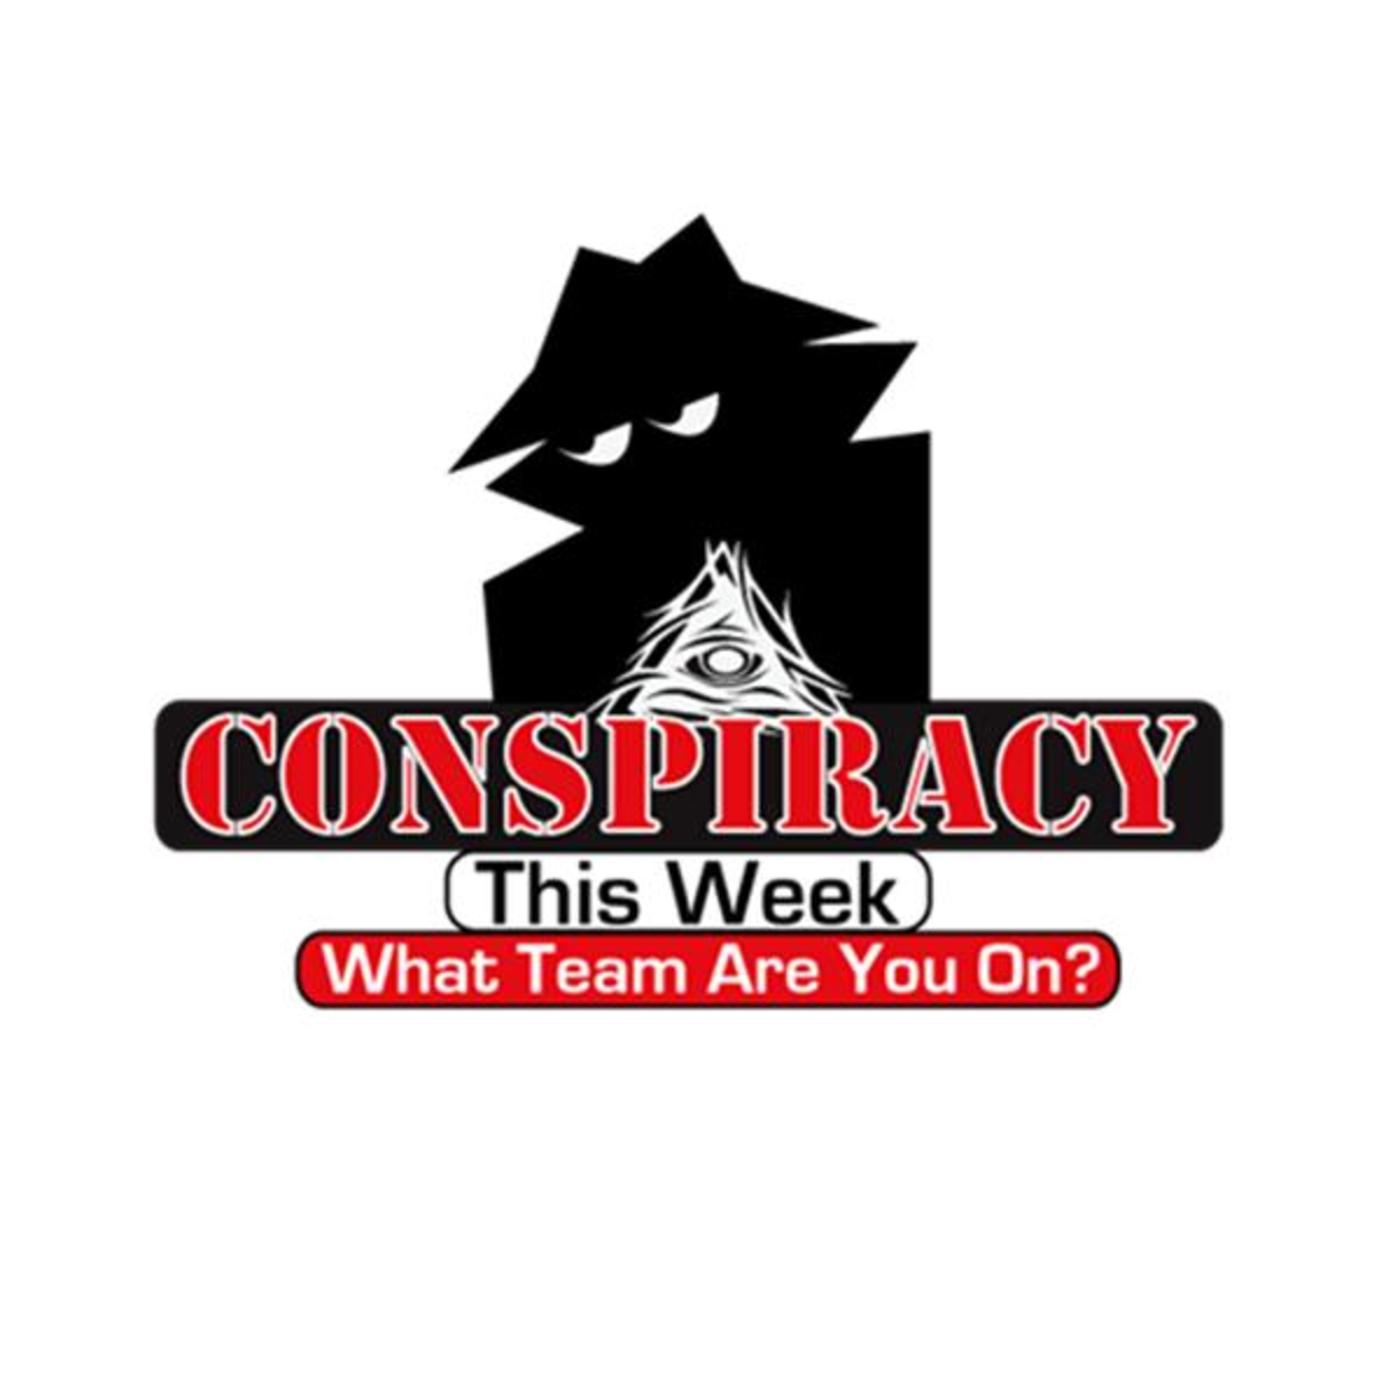 Conspiracy This Week